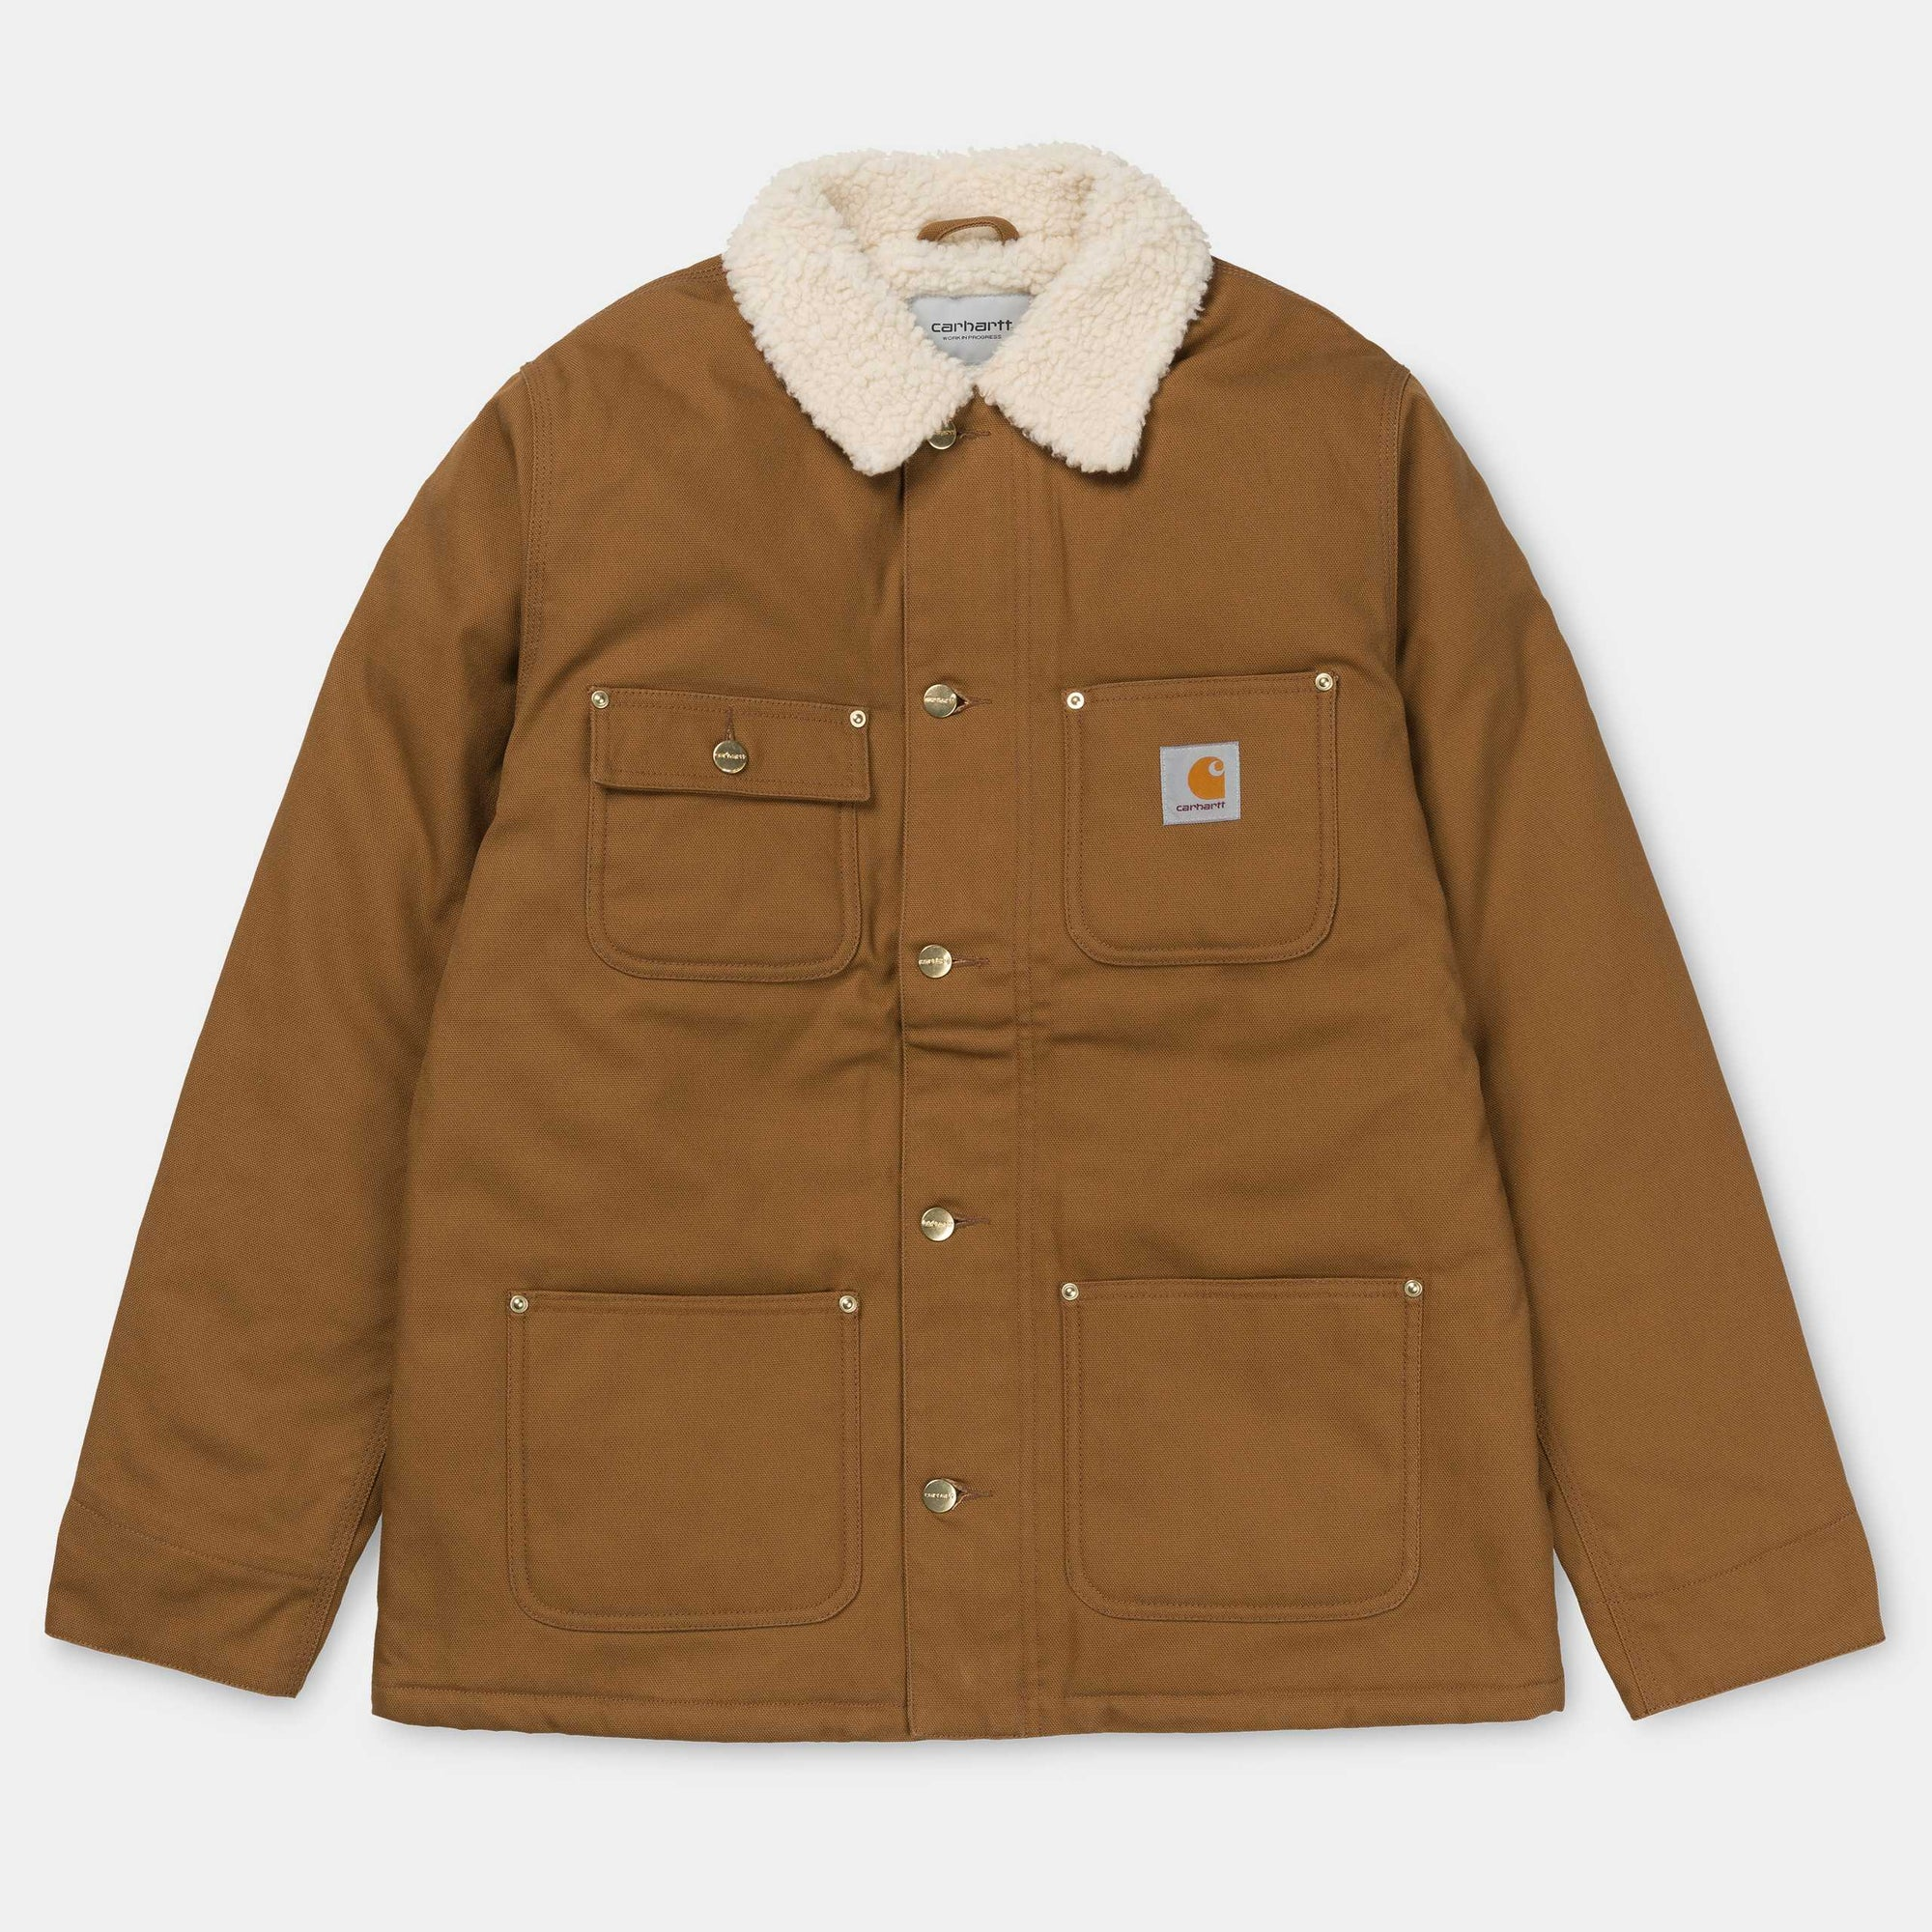 Carhartt WIP - Fairmount Coat Hamilton Brown